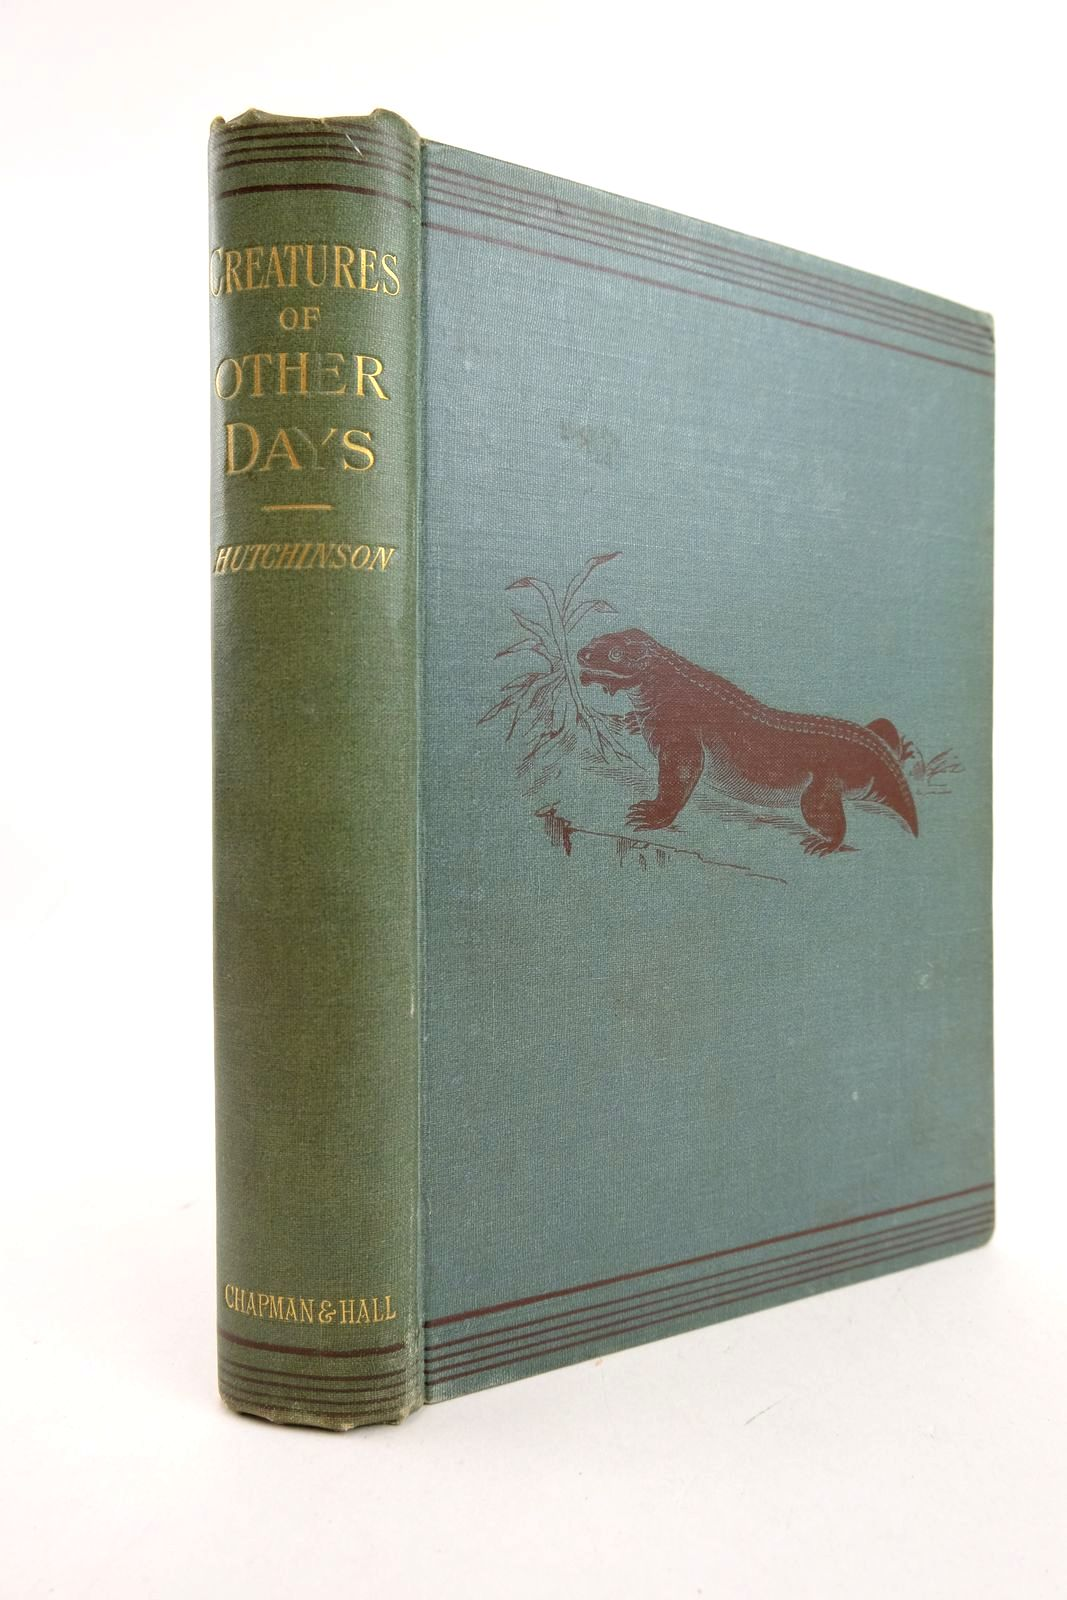 Photo of CREATURES OF OTHER DAYS- Stock Number: 2133148